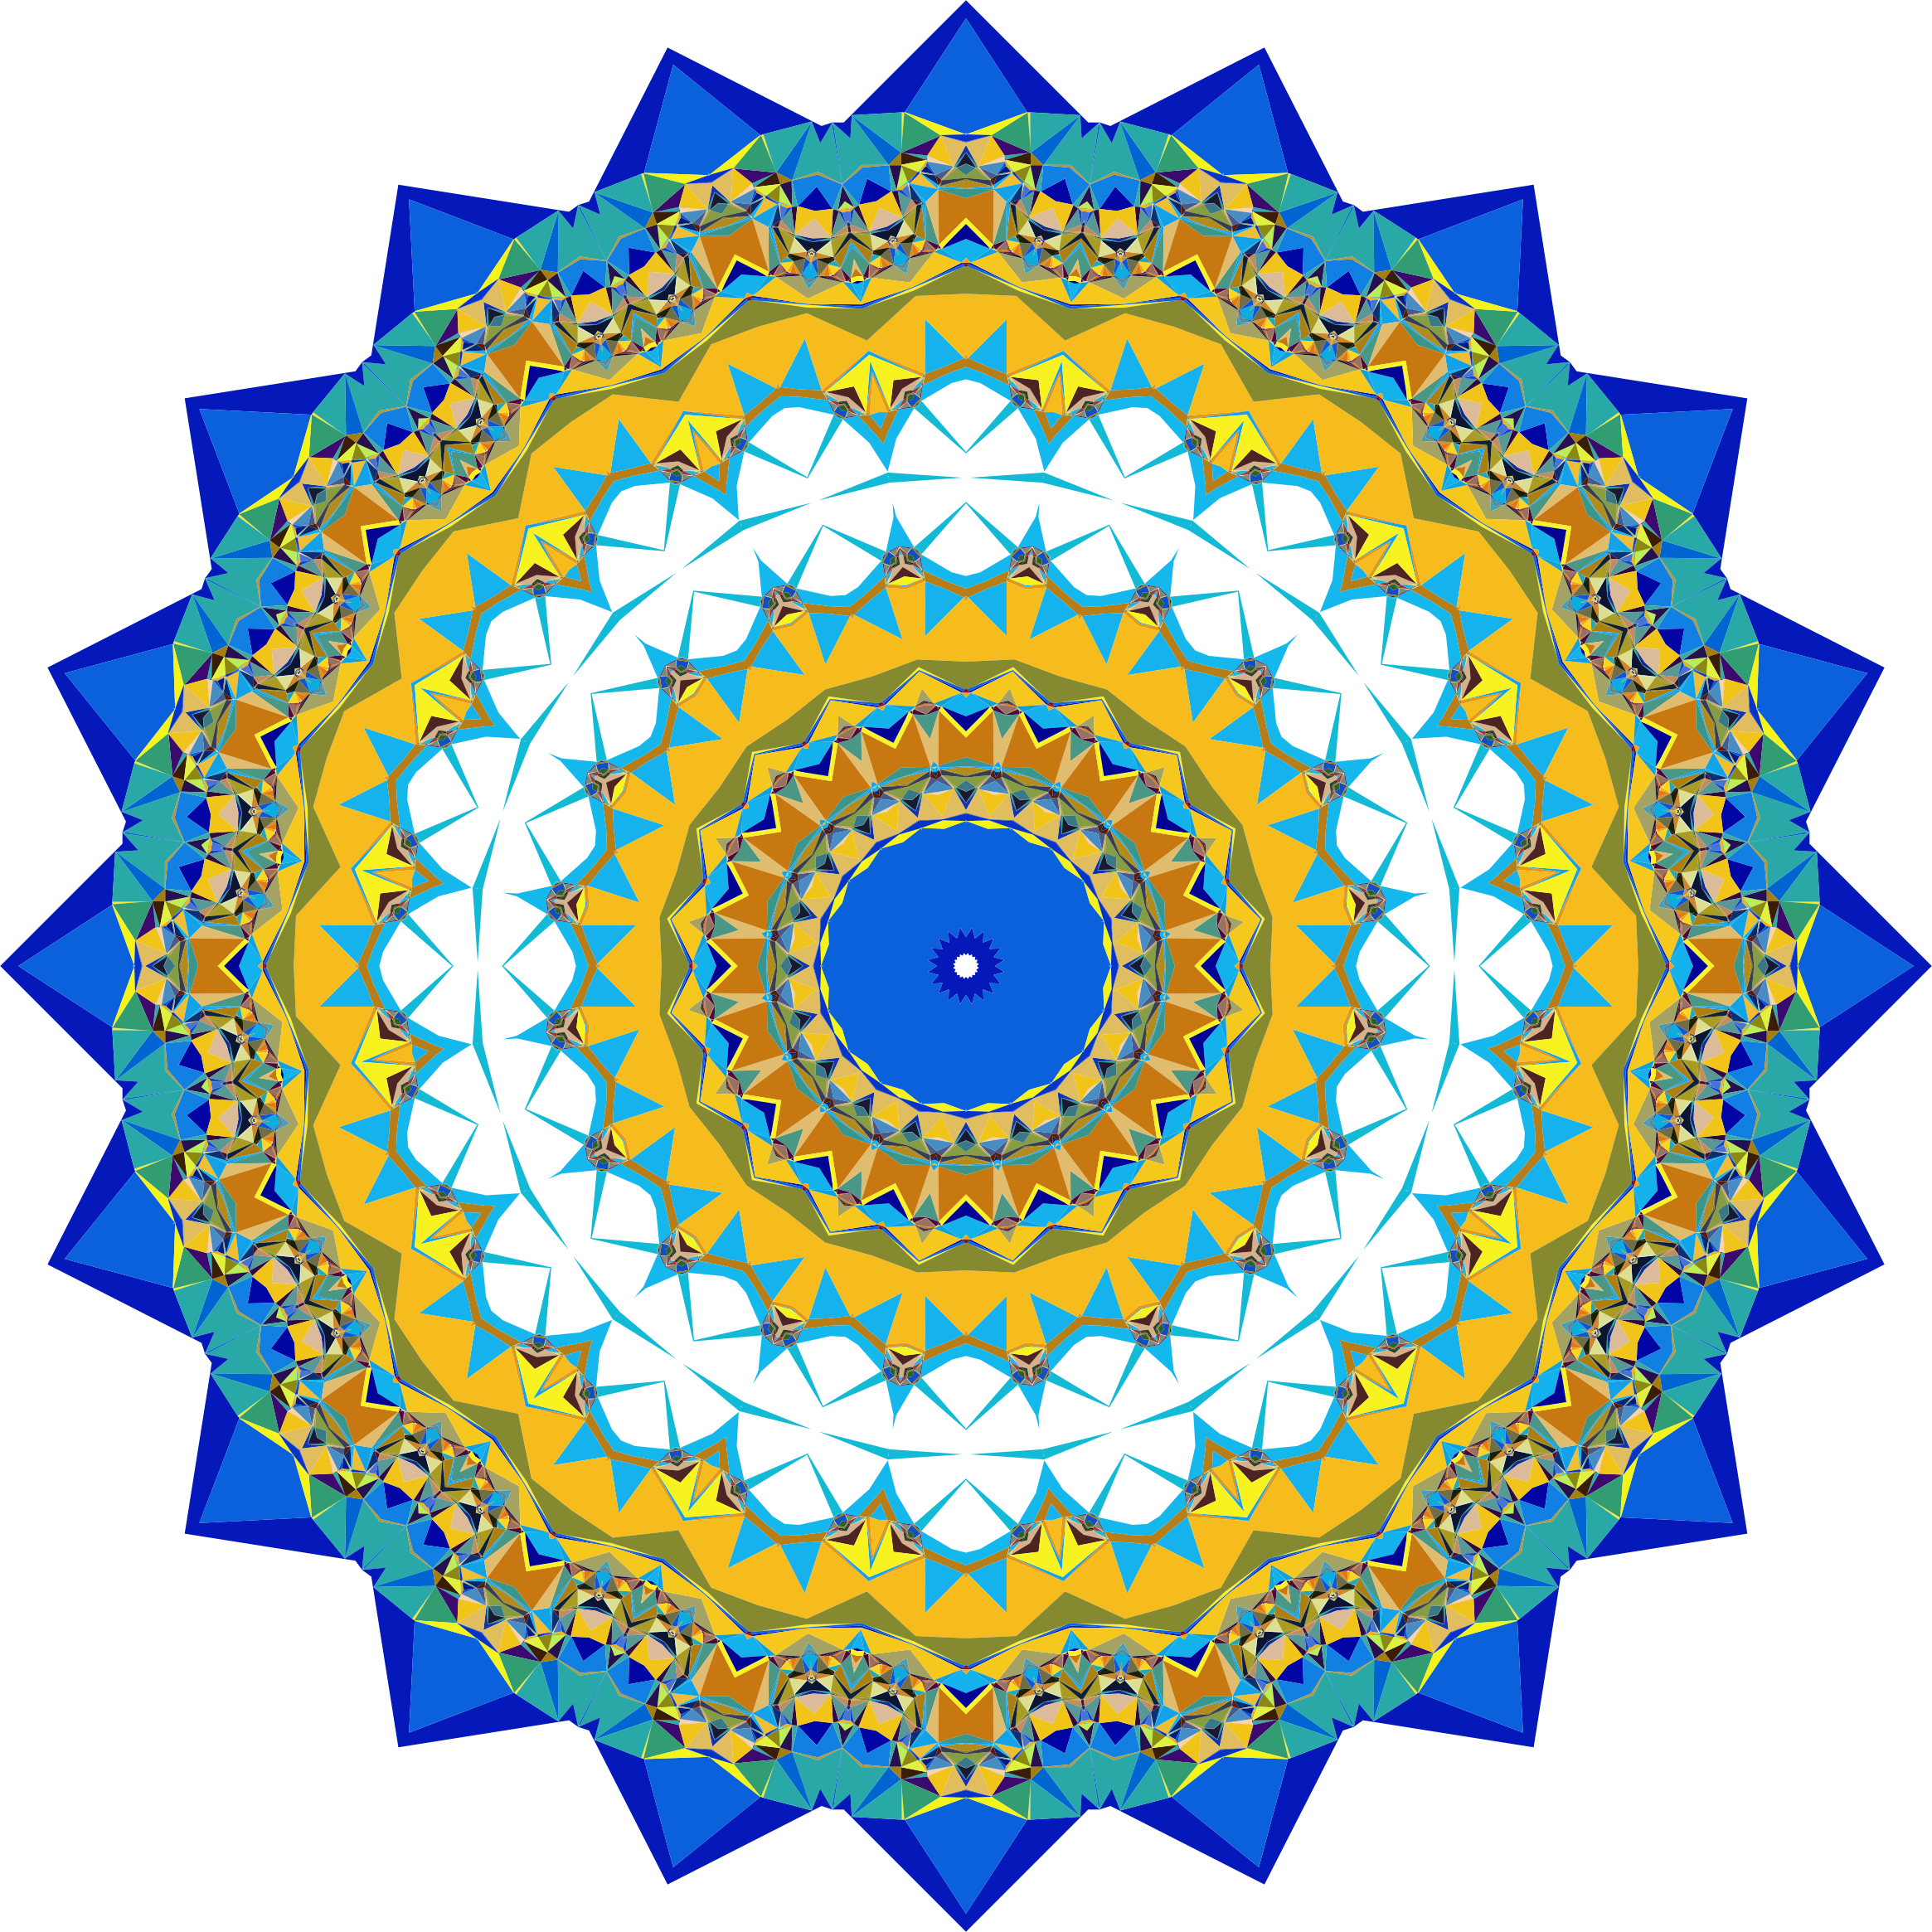 Abstract Geometric Mandala by GDJ